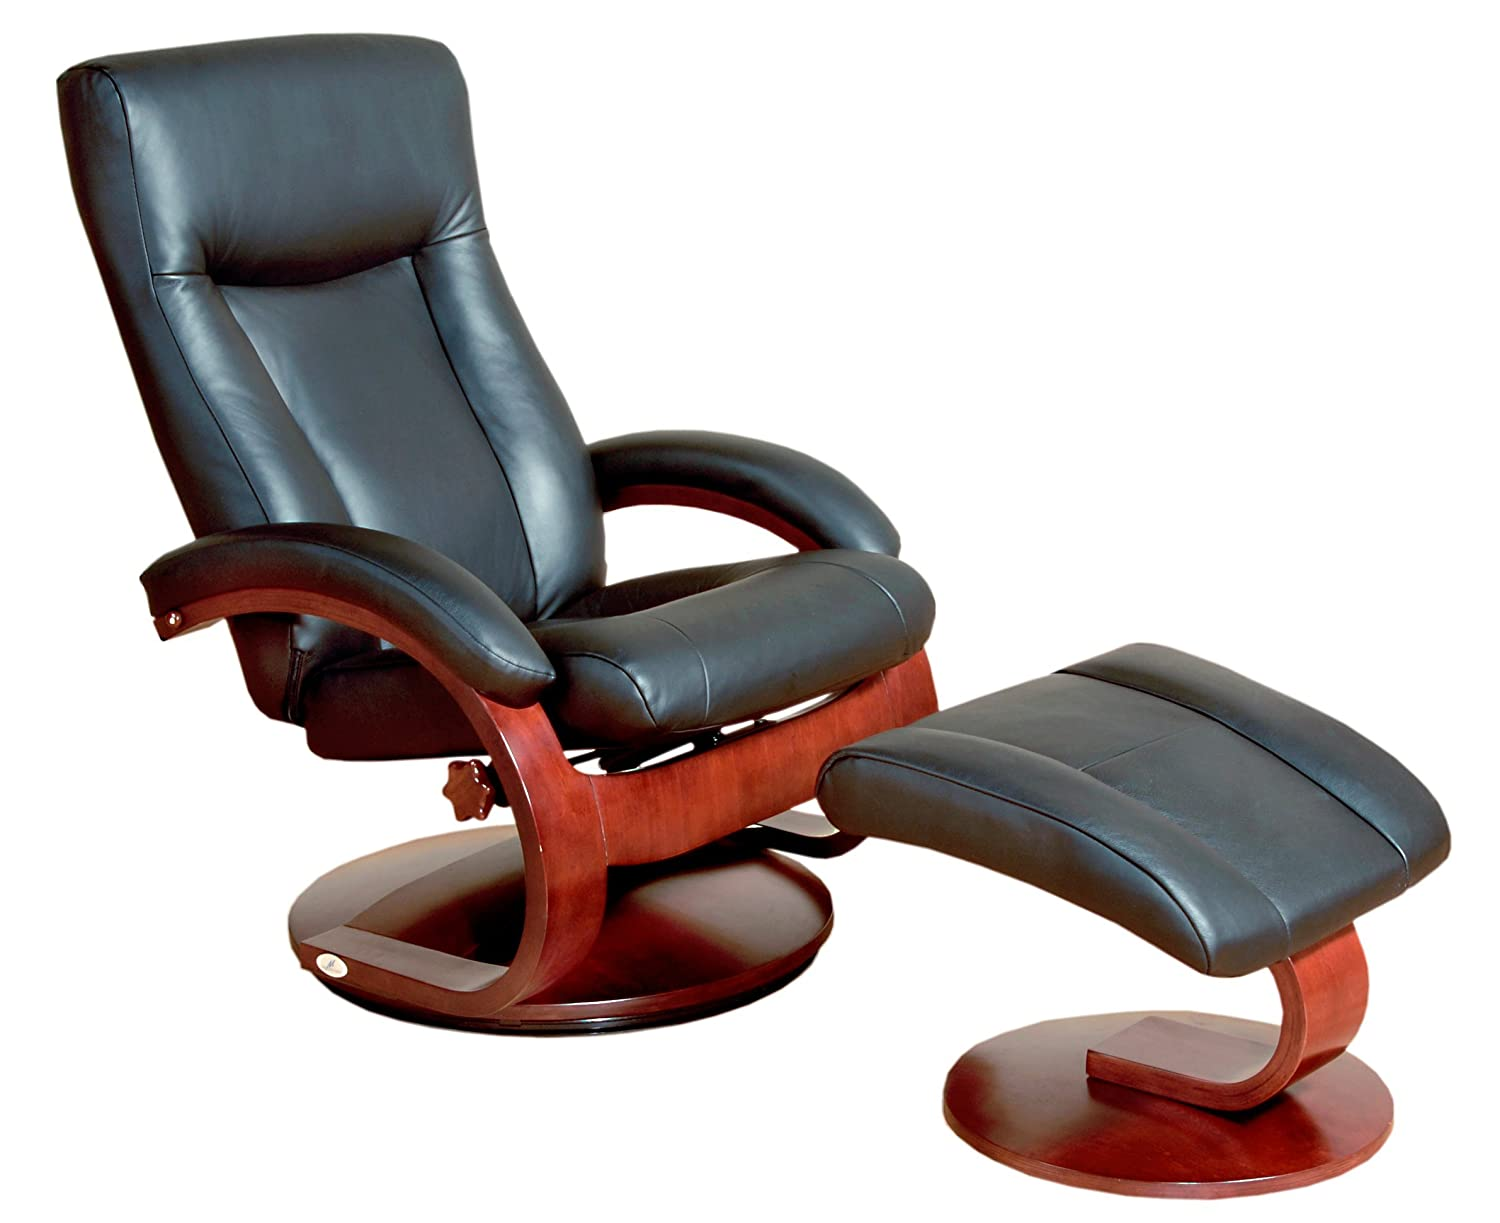 Amazon.com Mac Motion Oslo Collection Recliner with Matching Ottoman in Black Top Grain Leather with Merlot Frame Kitchen u0026 Dining  sc 1 st  Amazon.com & Amazon.com: Mac Motion Oslo Collection Recliner with Matching ... islam-shia.org